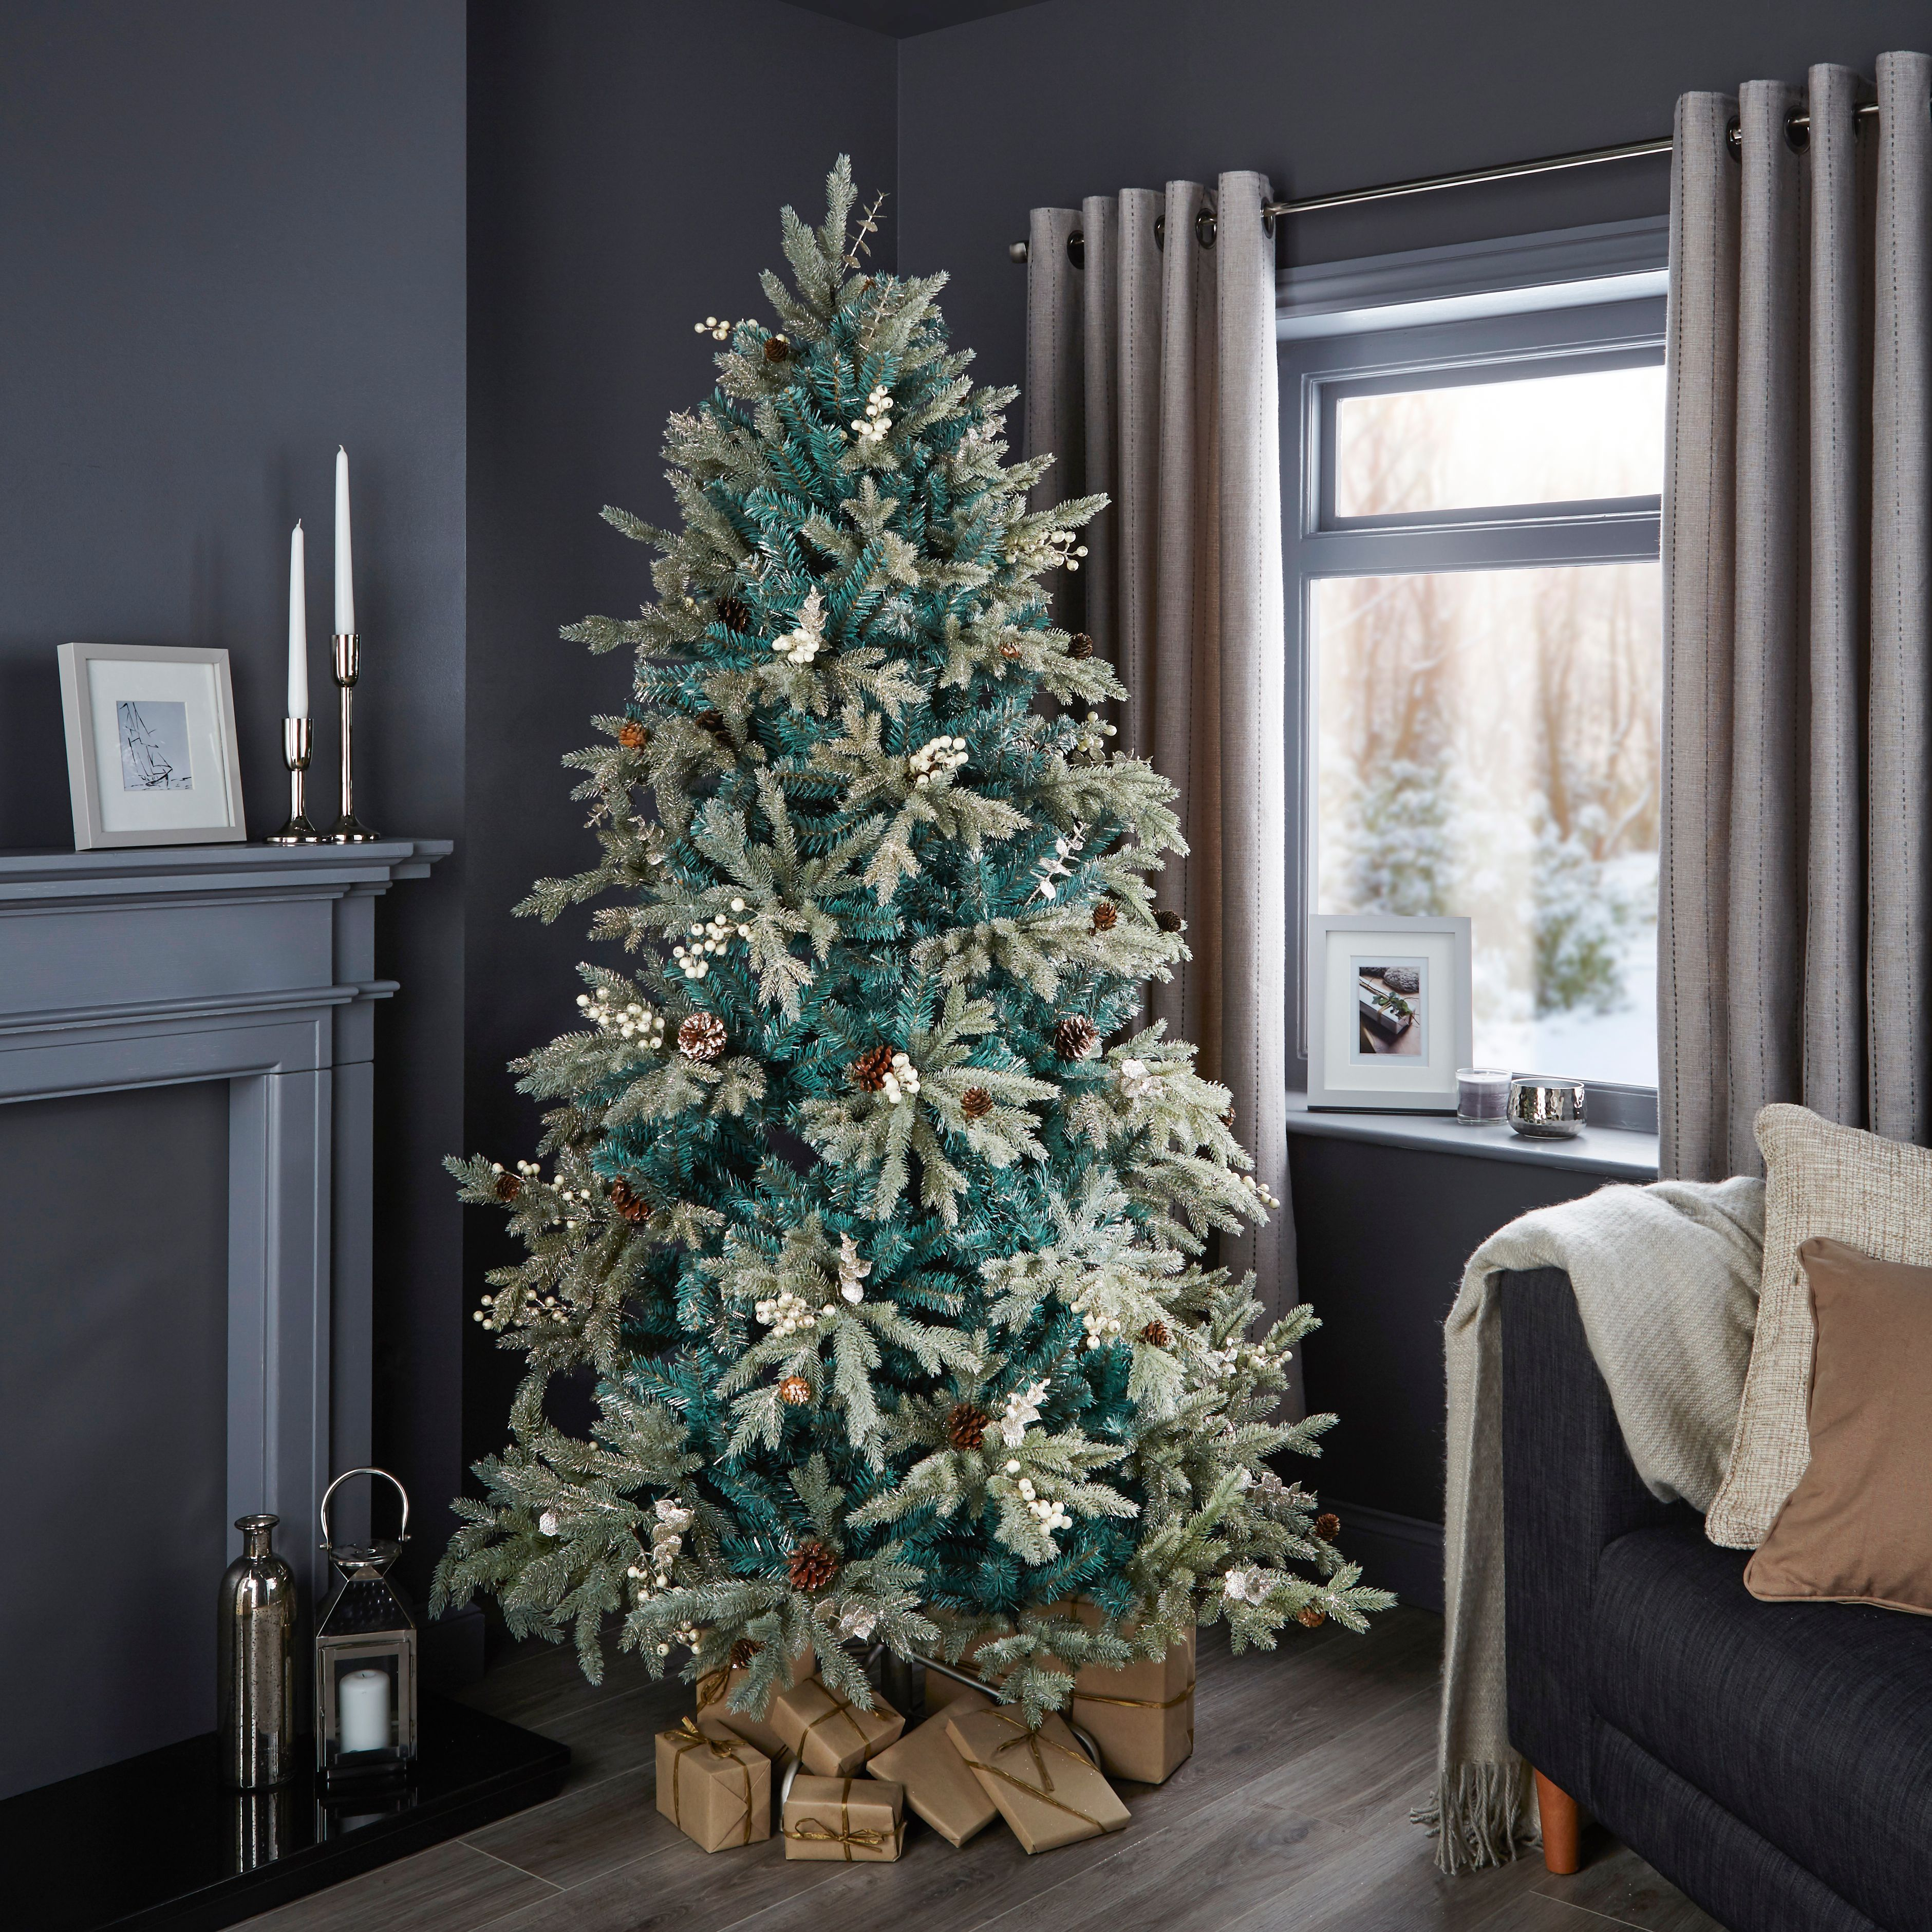 6ft 6In Winterfold Mint Green Pre-Decorated Christmas Tree | Departments |  DIY at B&Q